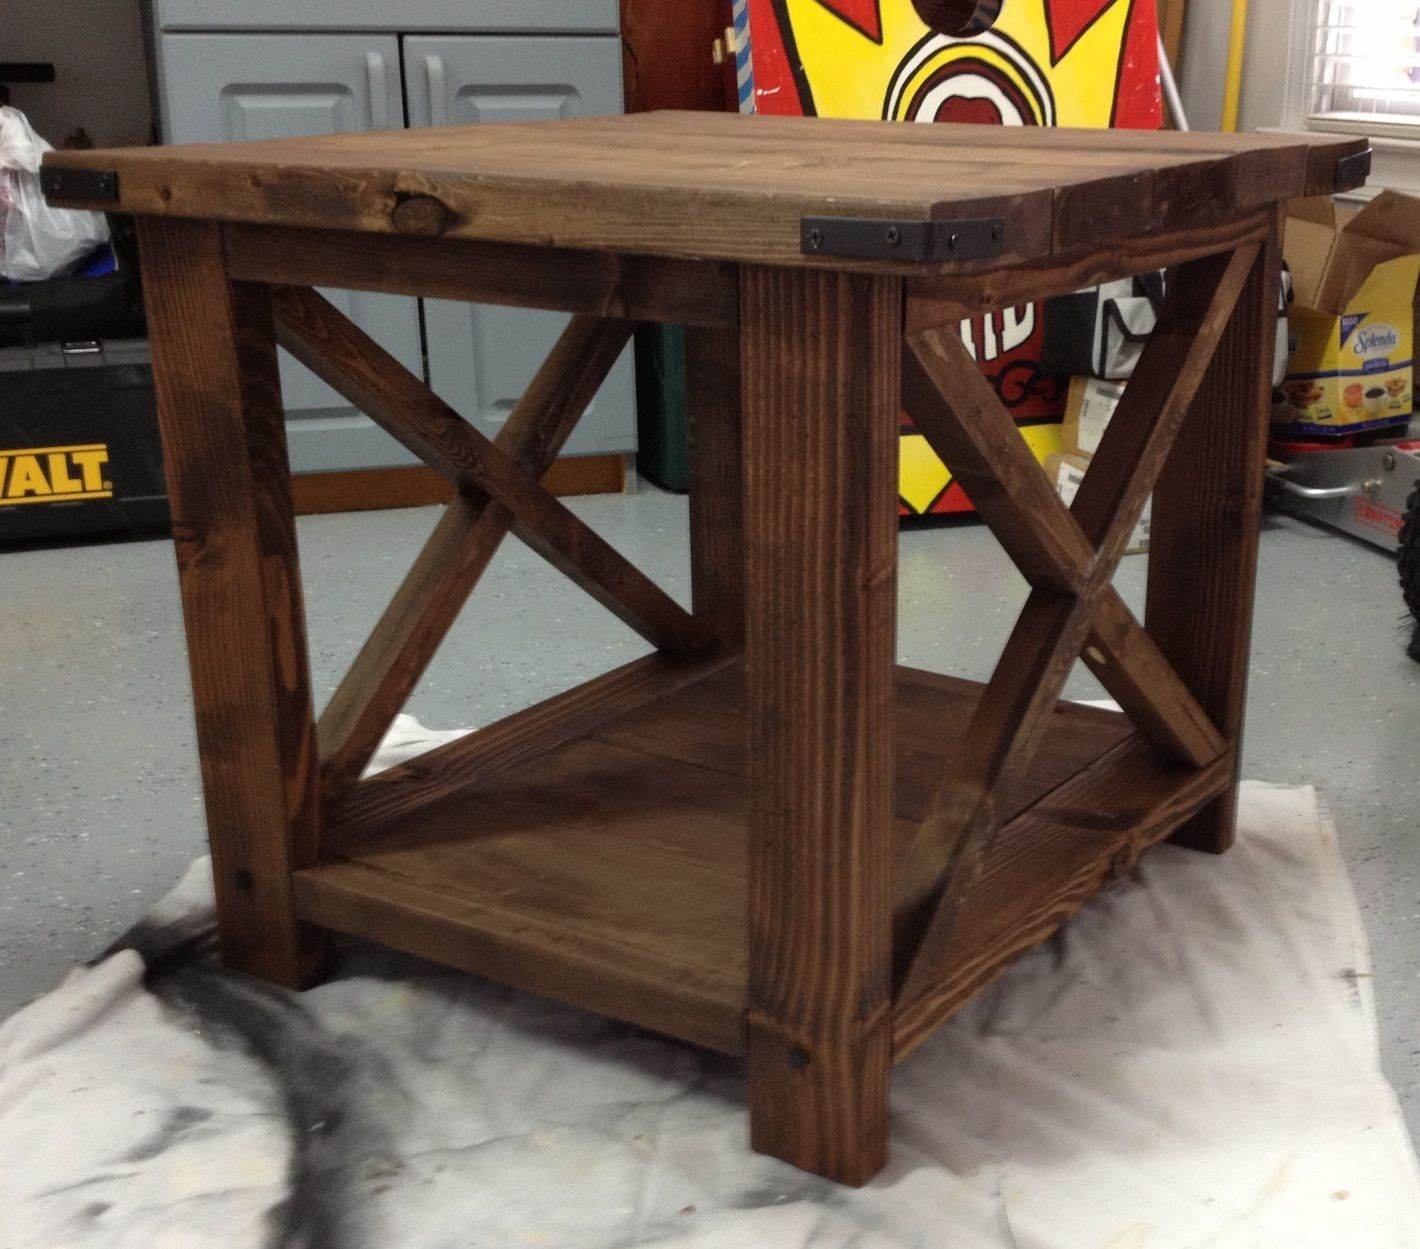 do it yourself furniture projects. Our Rustic End Table | Do It Yourself Home Projects From Ana White Furniture